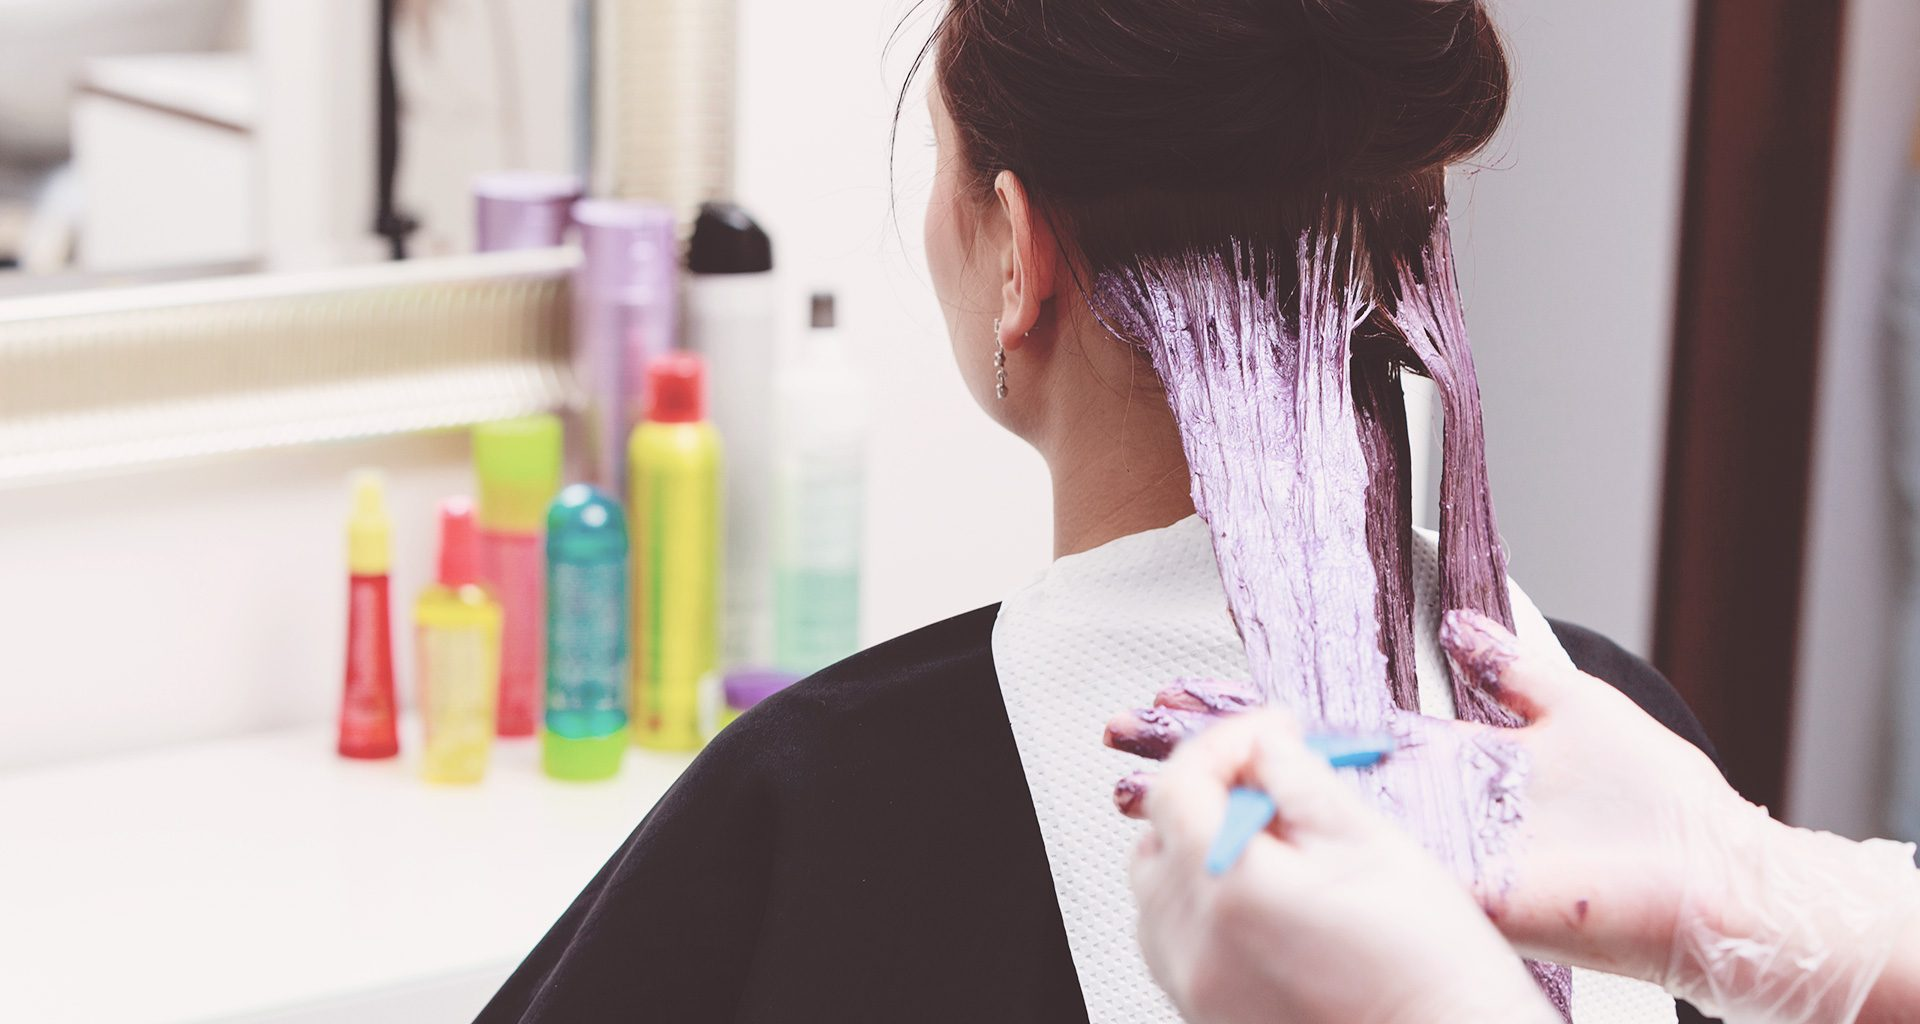 is it safe to dye hair while pregnant